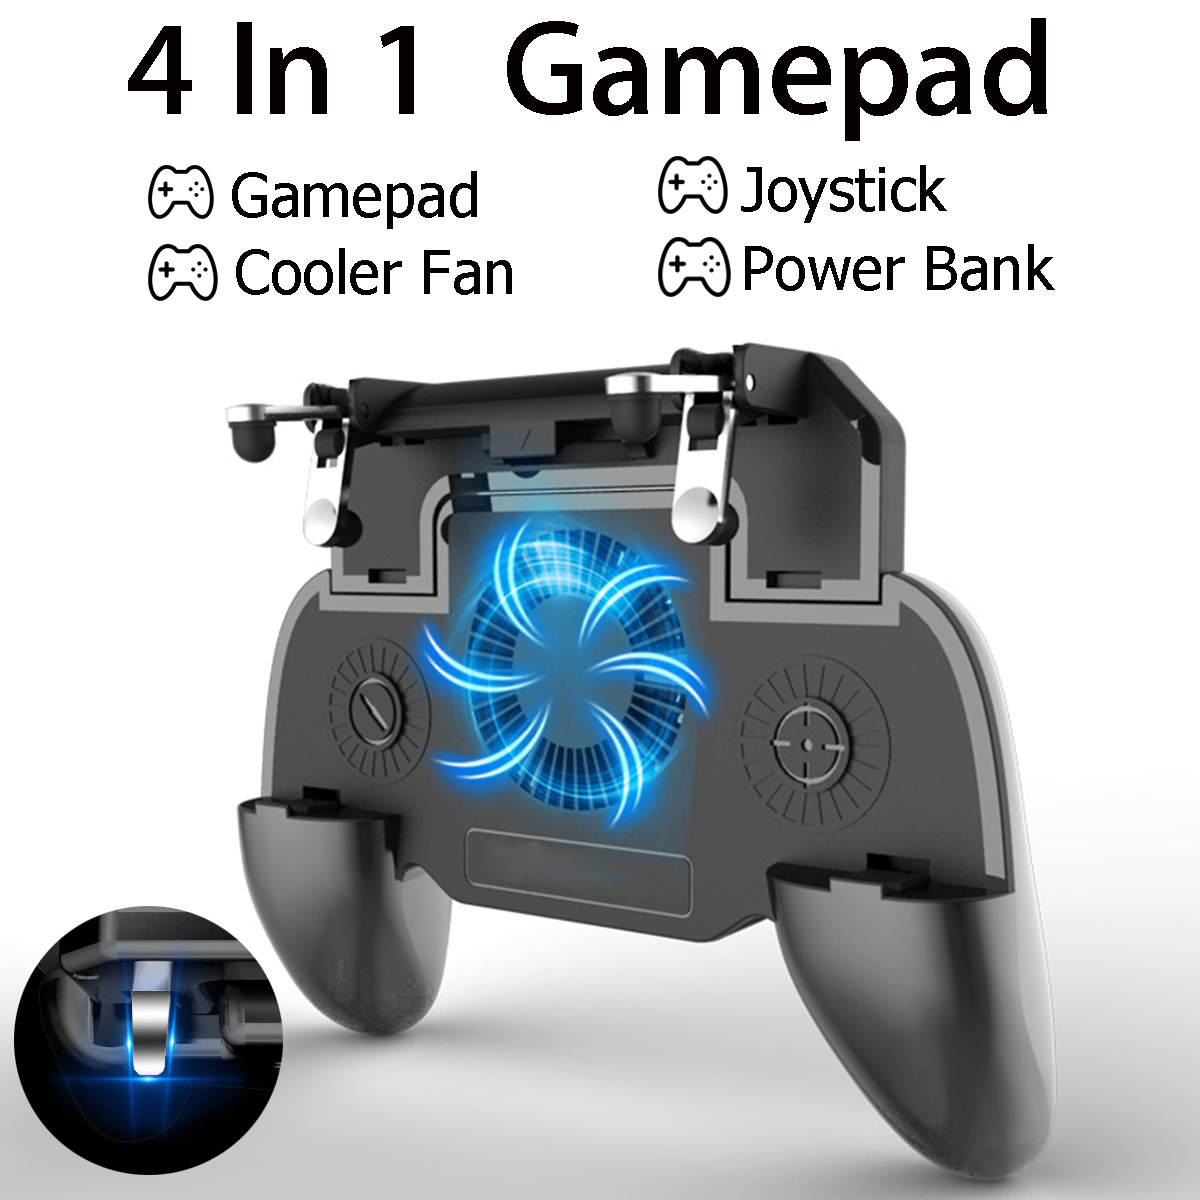 Mobile GamePad Joystick For PUBG Cooler Fan L1 R1 Shooter Controller Handle Smartphone Trigger With 2000/4000mAh Power Bank